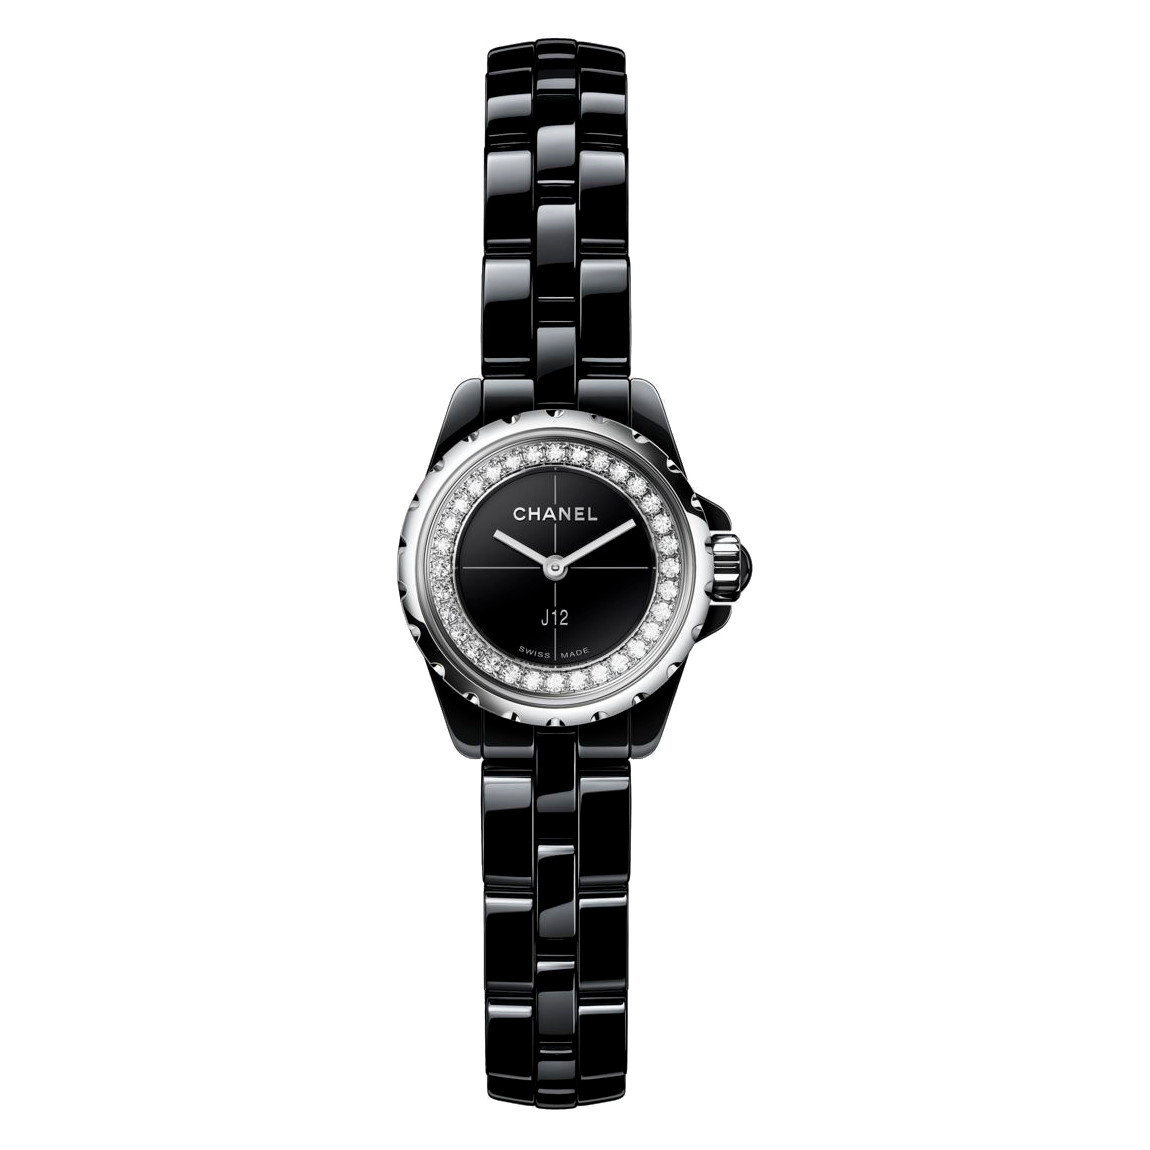 J12 19mm Black Ceramic & Diamonds (H5235)